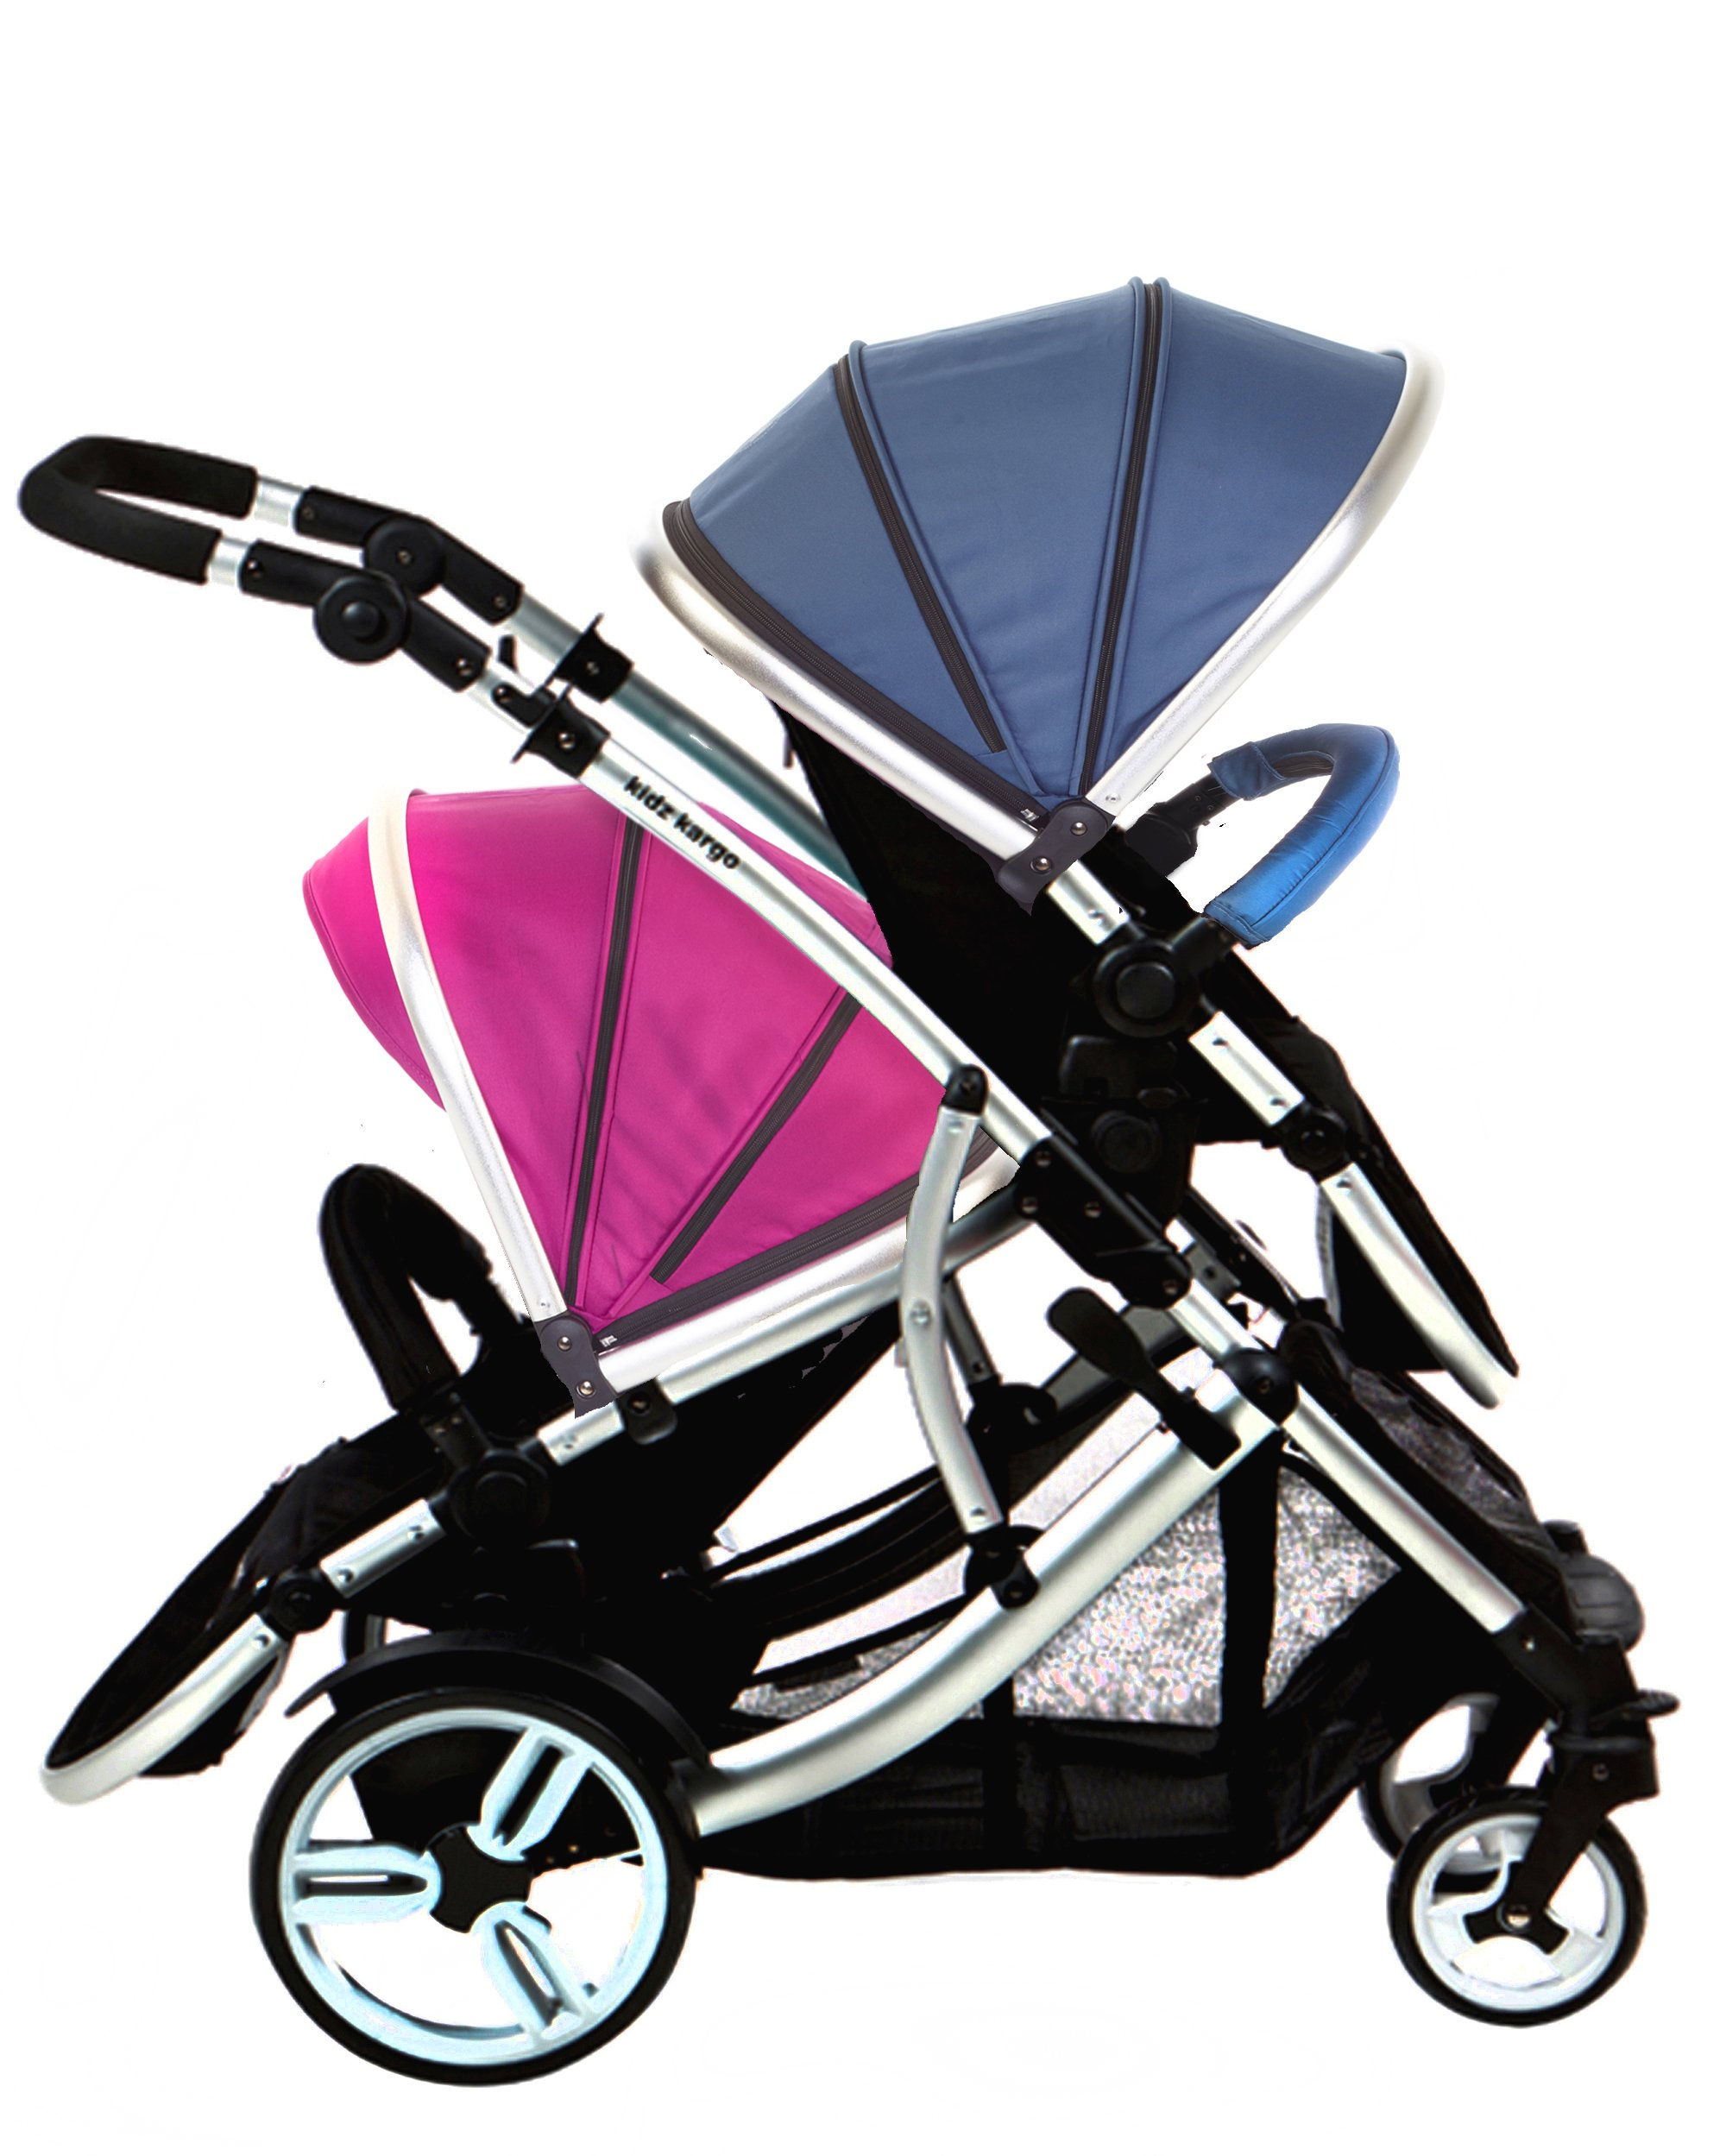 Kids Kargo Duellette 21 BS Travel System Pram Double Pushchair (Raspberry and Blueberry) Kids Kargo Suitability Newborn Twins (if used with car seats) or Newborn/toddler. Various seat positions. Both seats can face mum (ideal for twins) Accommodates 1 or 2 car seats 3